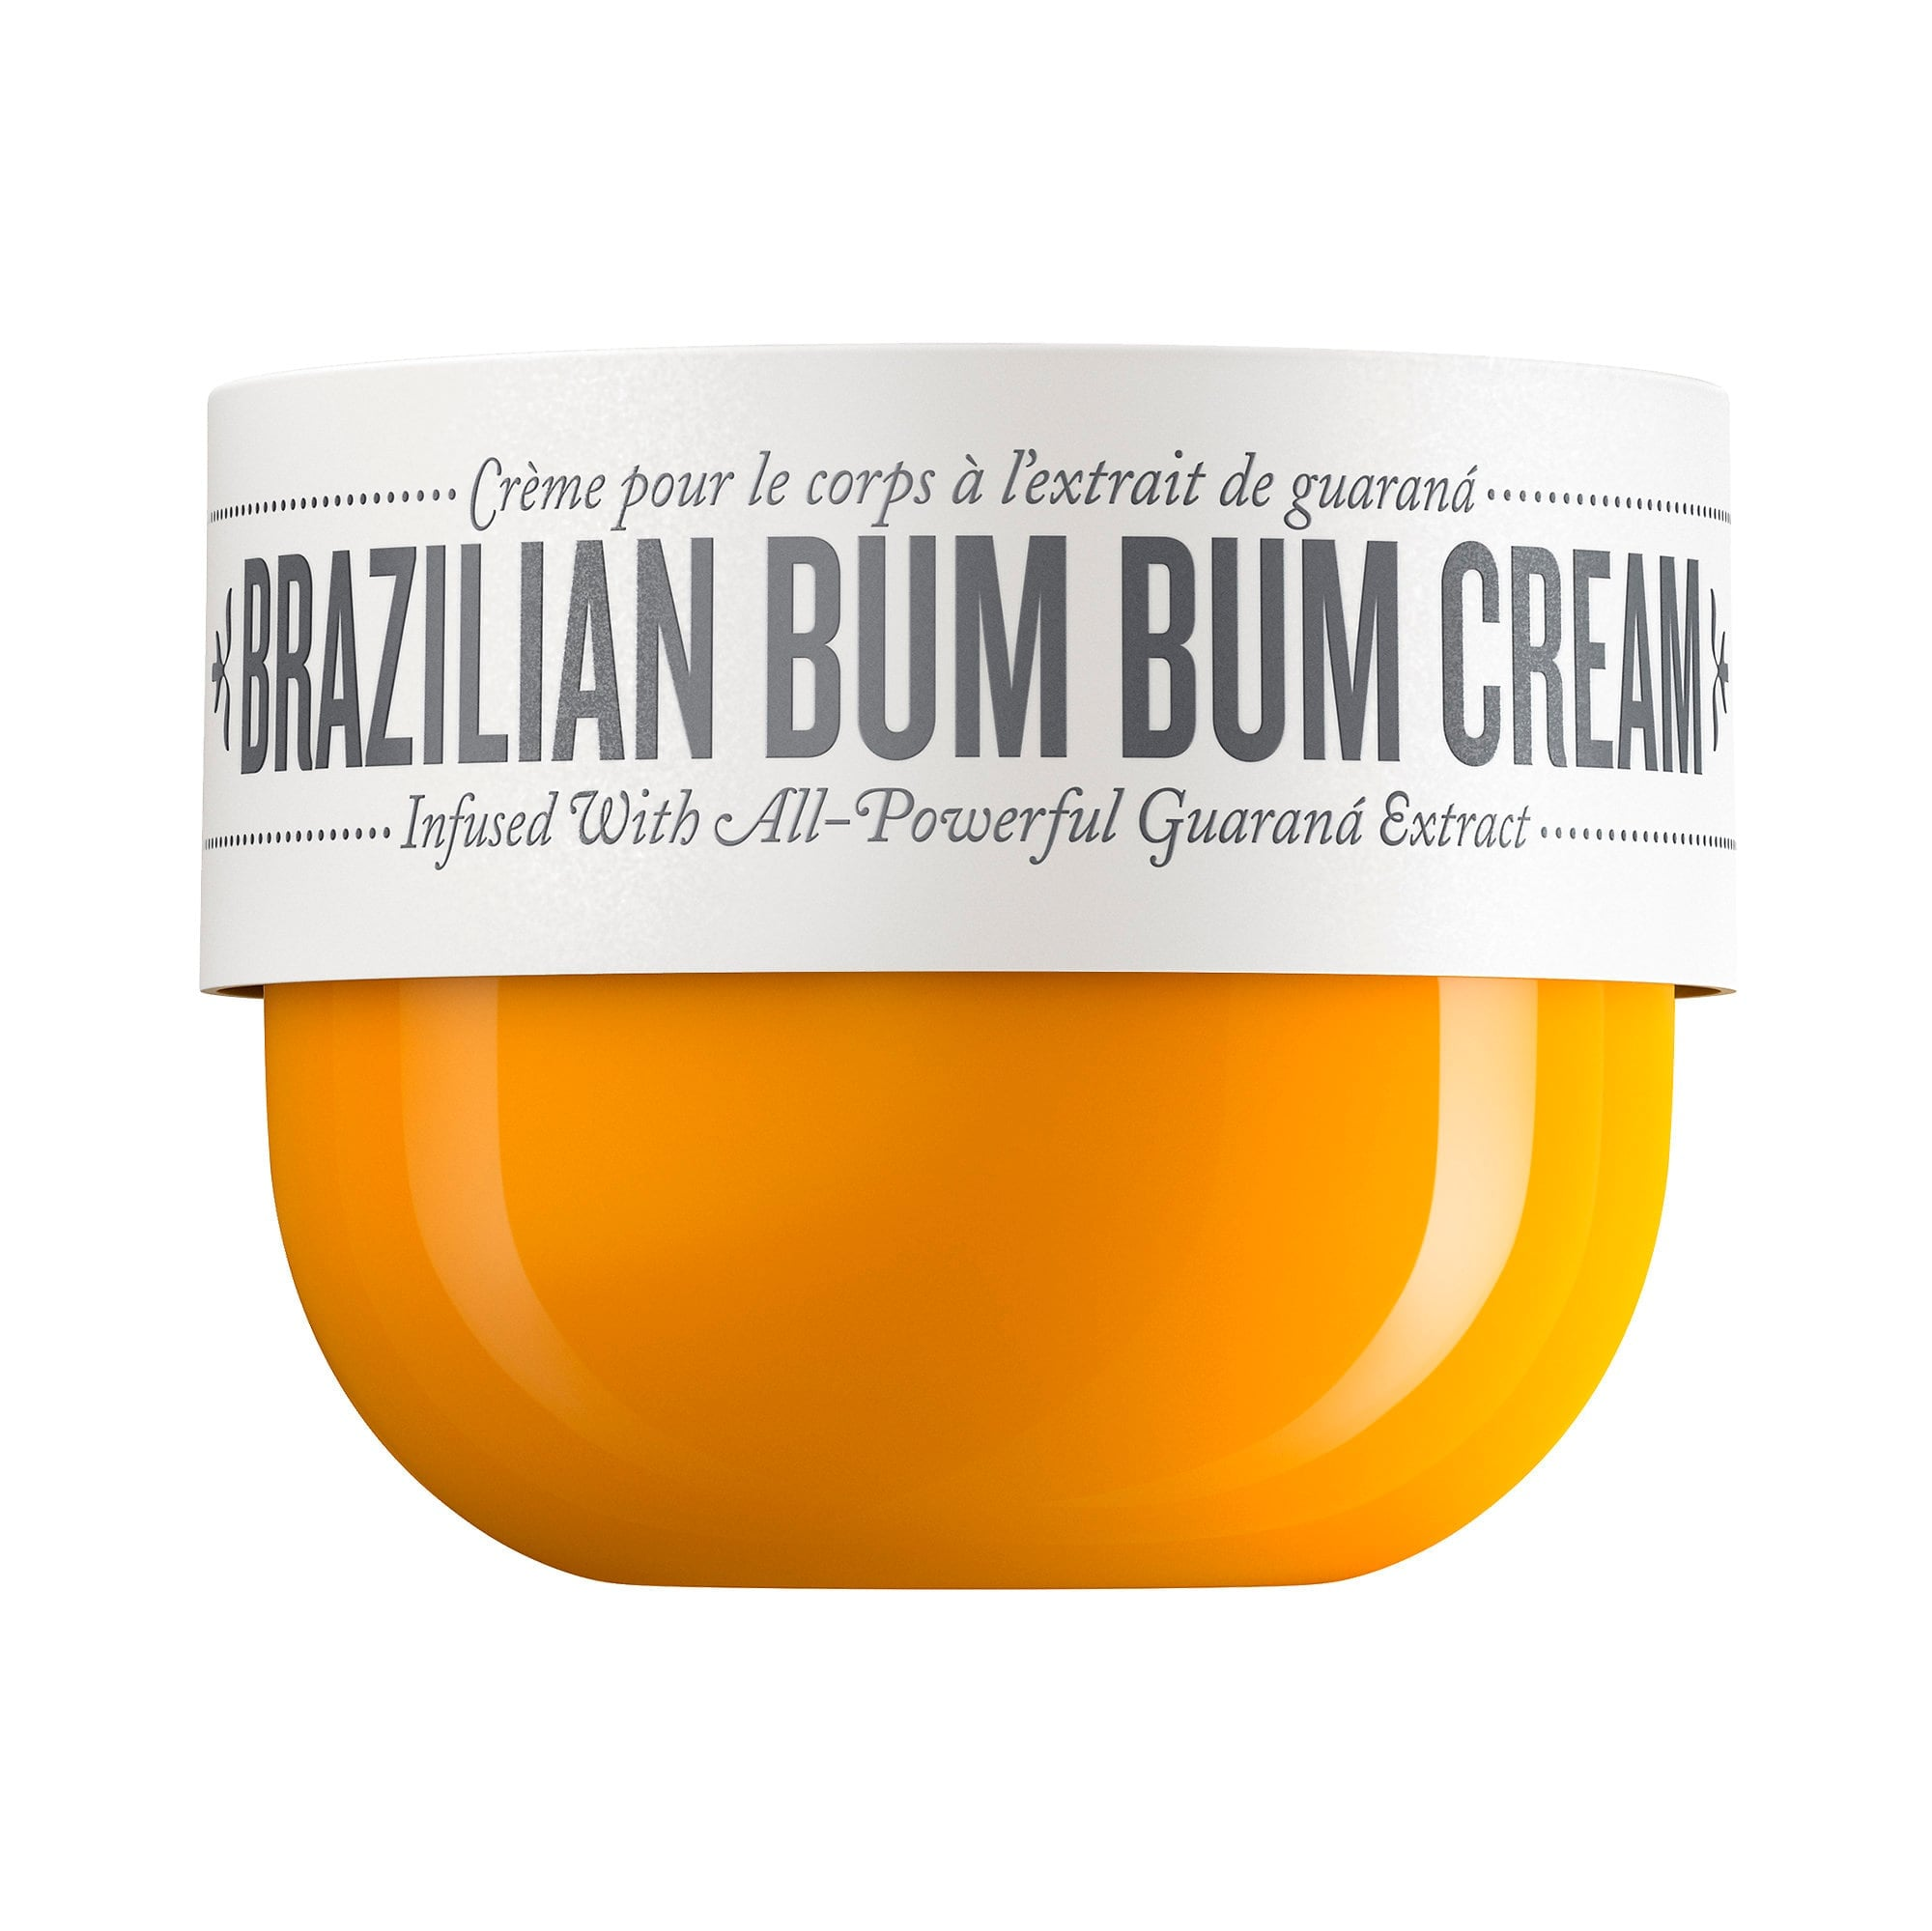 Image result for bum bum cream